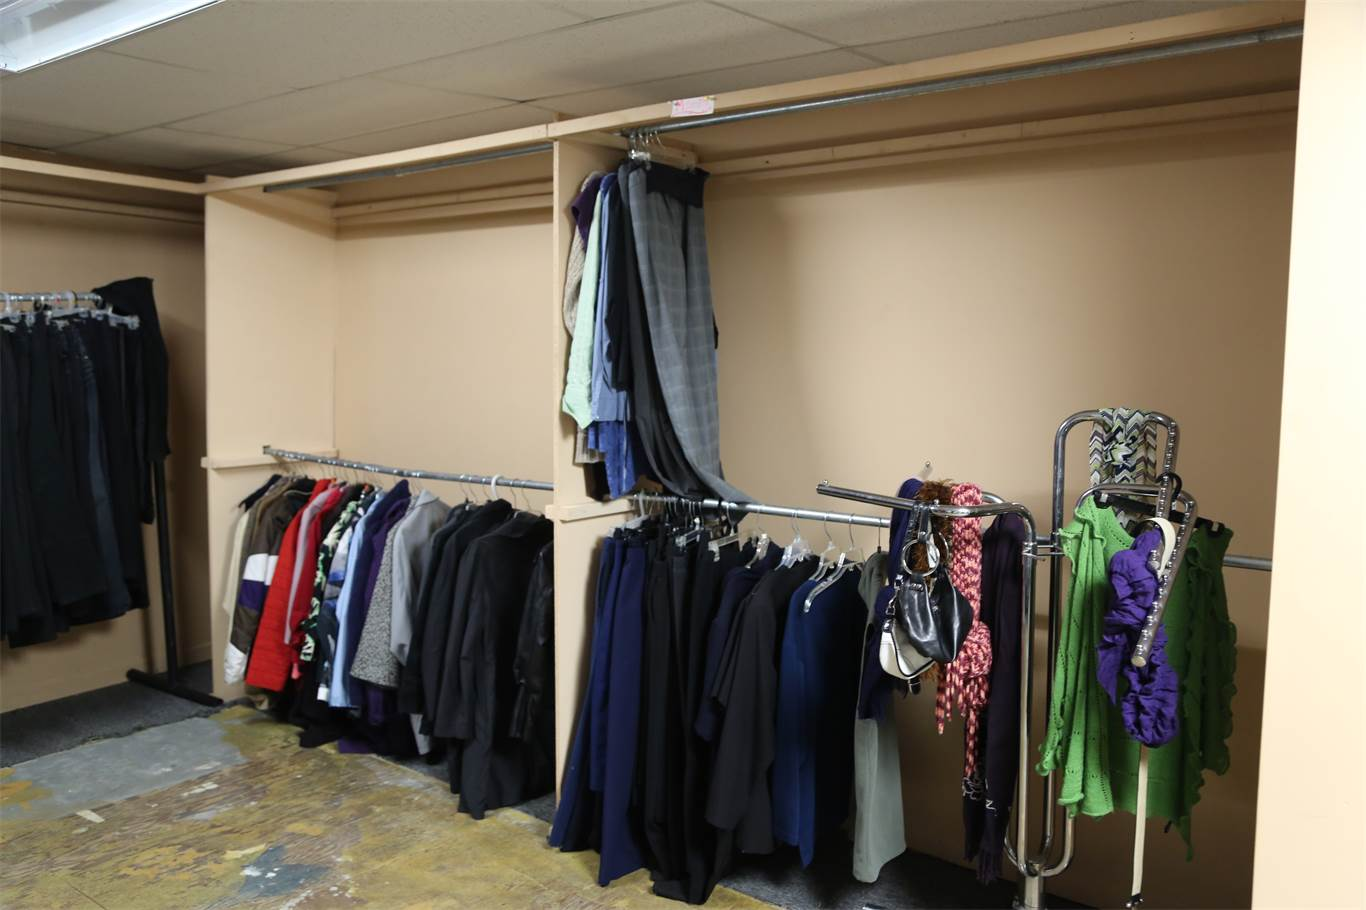 Currently, the Annex is in dire need of winter gear and accessories, as the weather is getting colder.